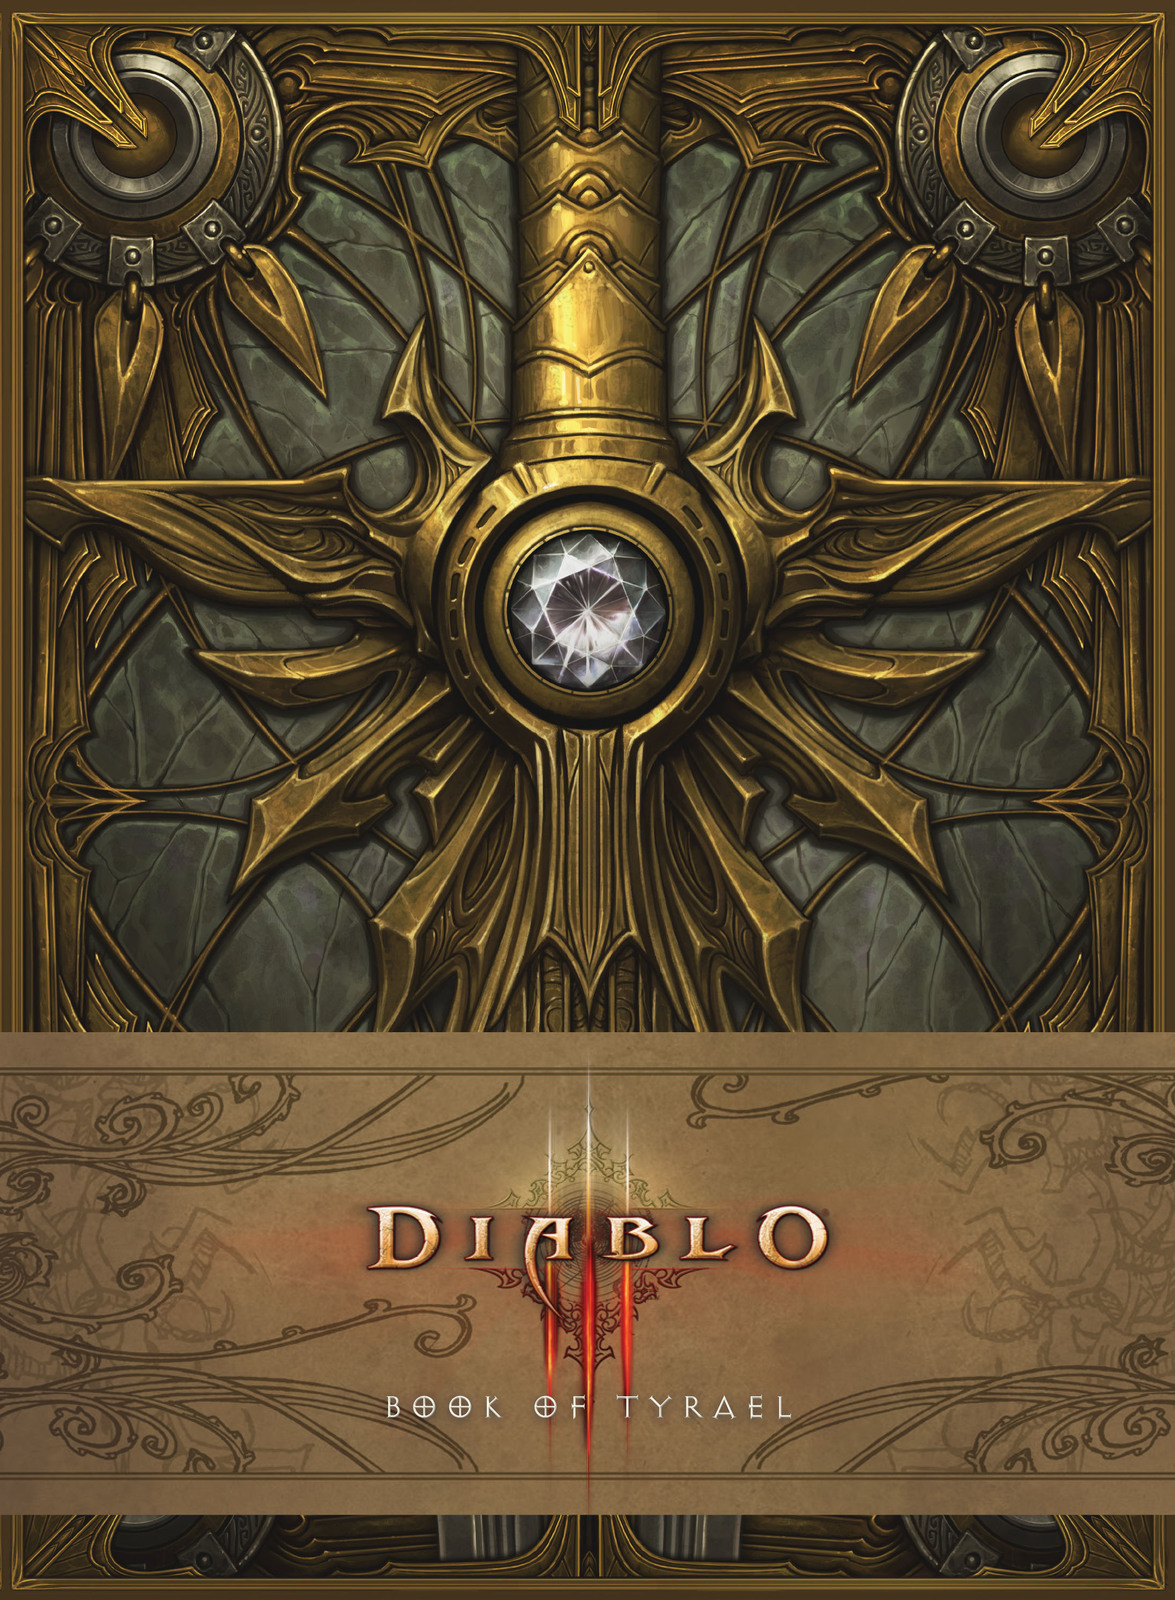 Diablo III: Book of Tyrael by Blizzard Entertainment image